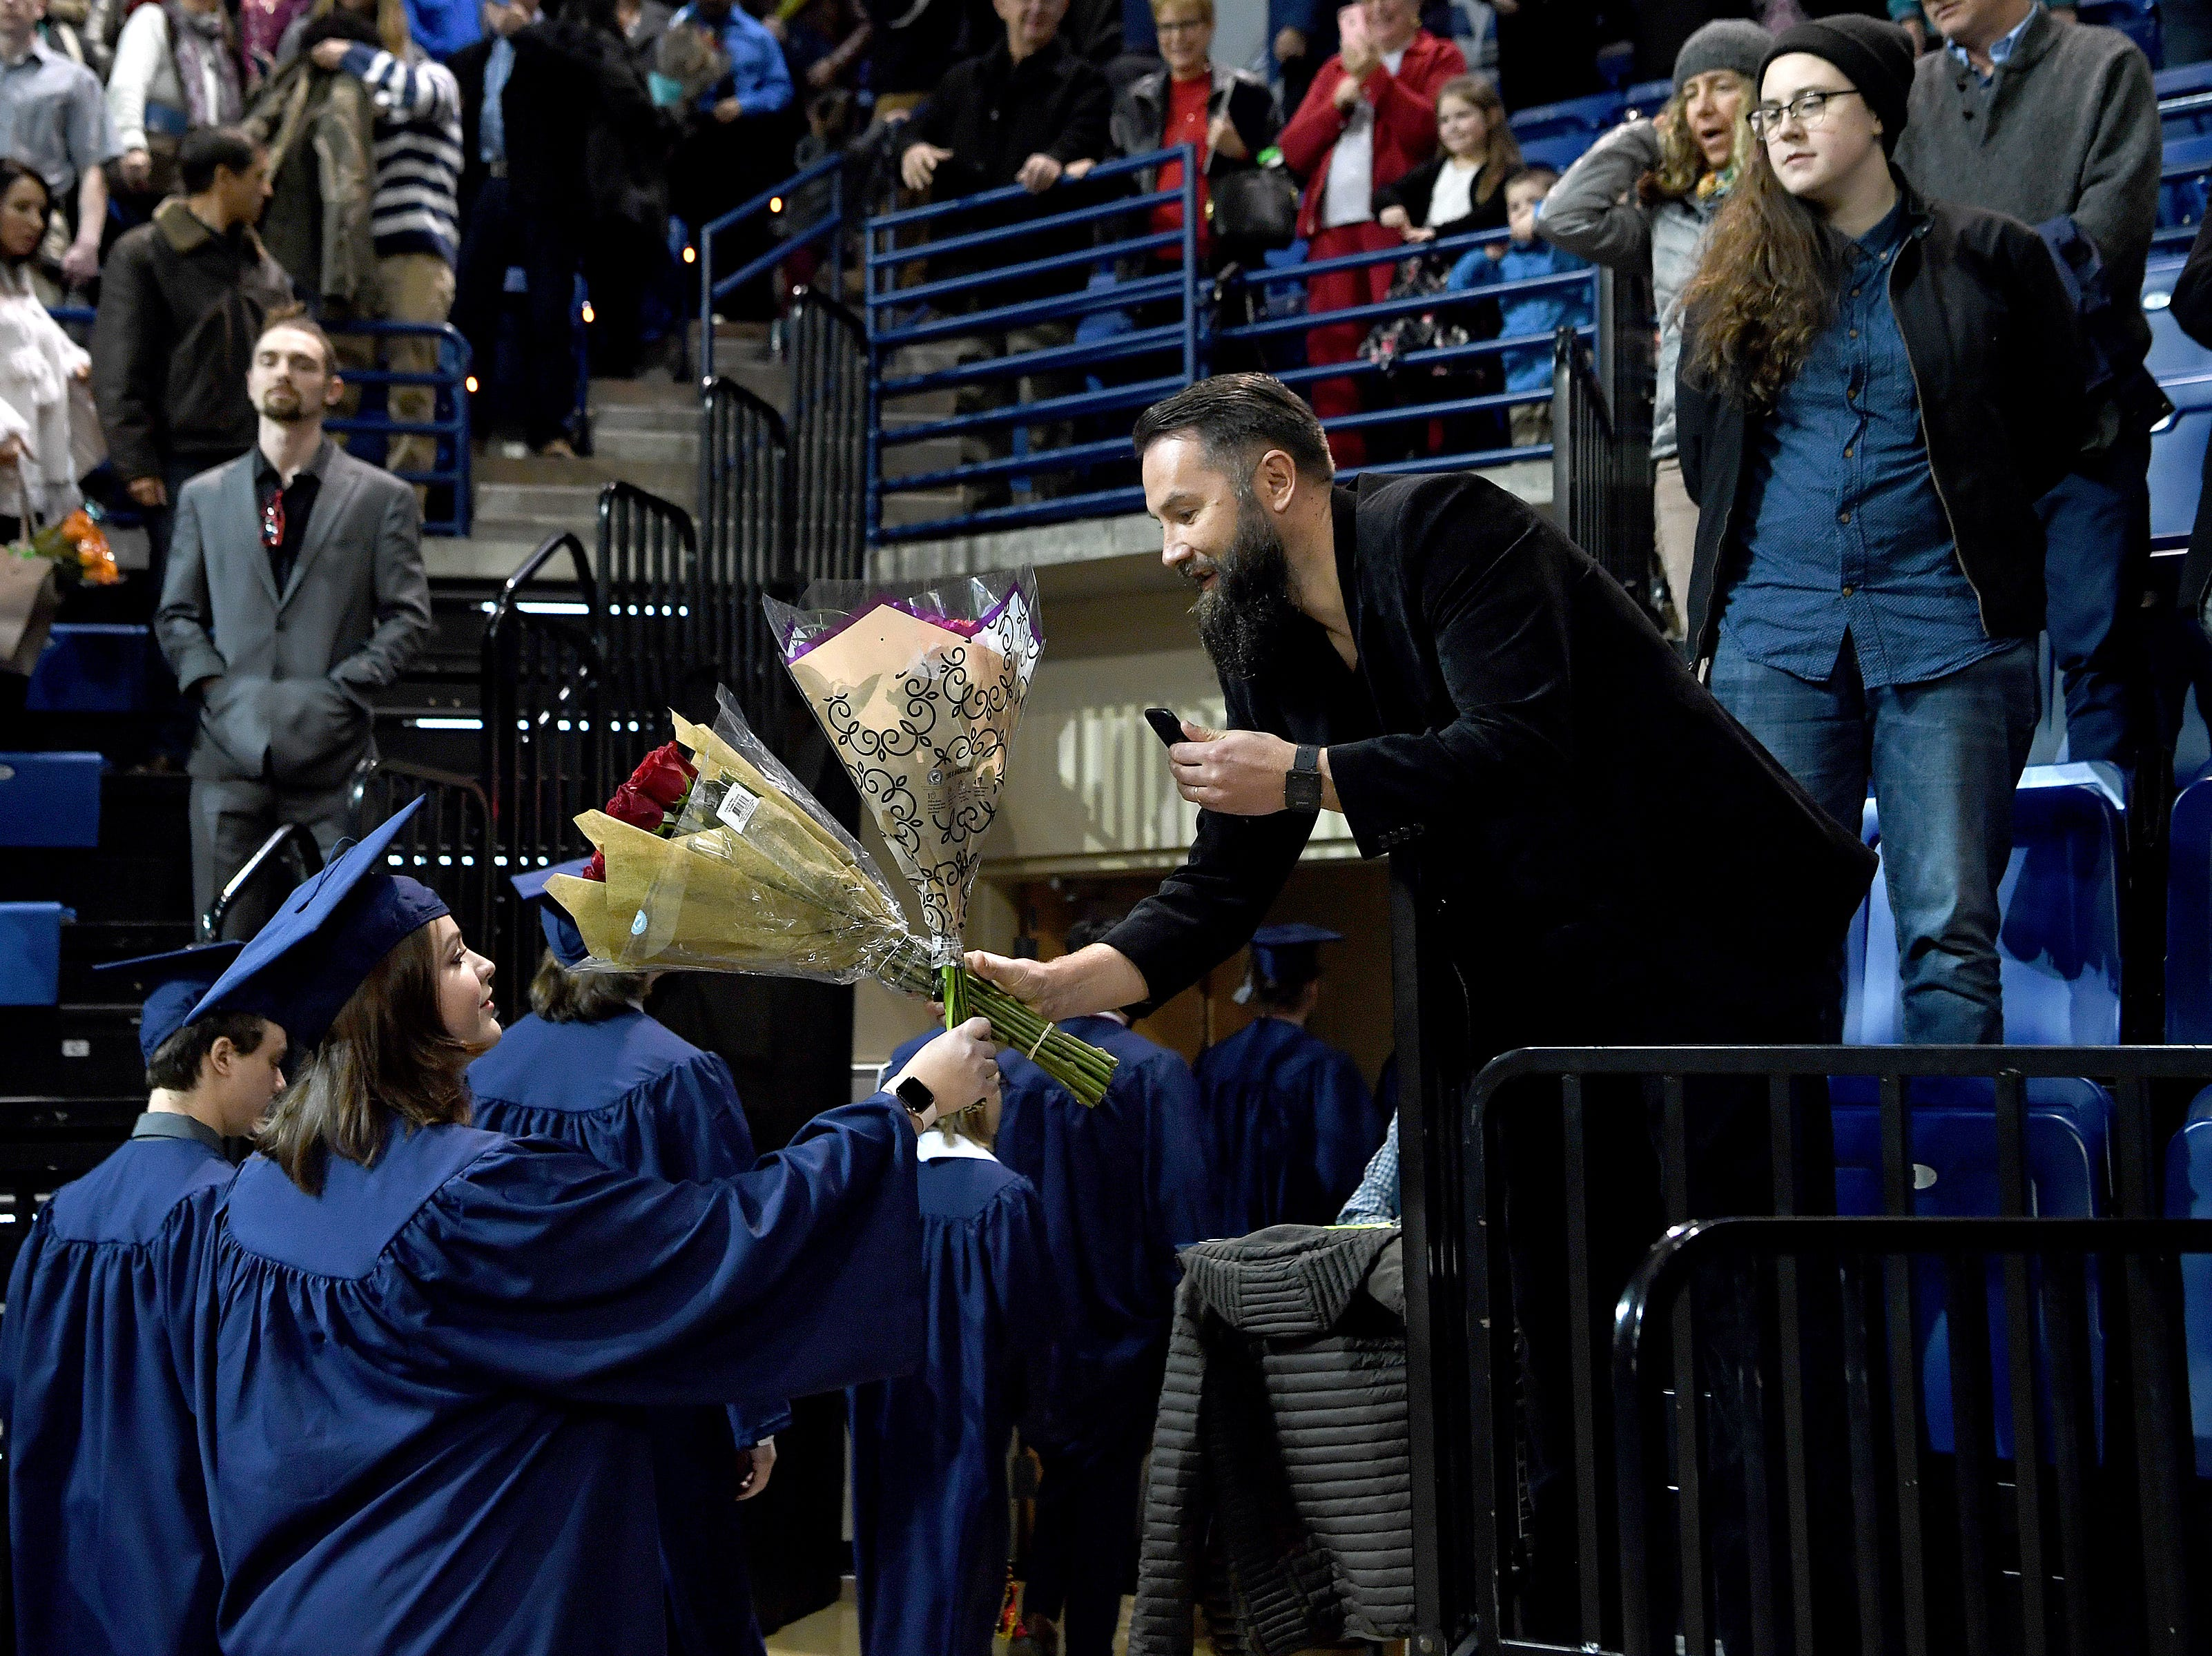 Vladimir Grebenyuk holds flowers for this daughter, Ekaterina, as he exits the stadium after the UNC Asheville winter commencement ceremony at Kimmel Arena on Dec. 14, 2018.